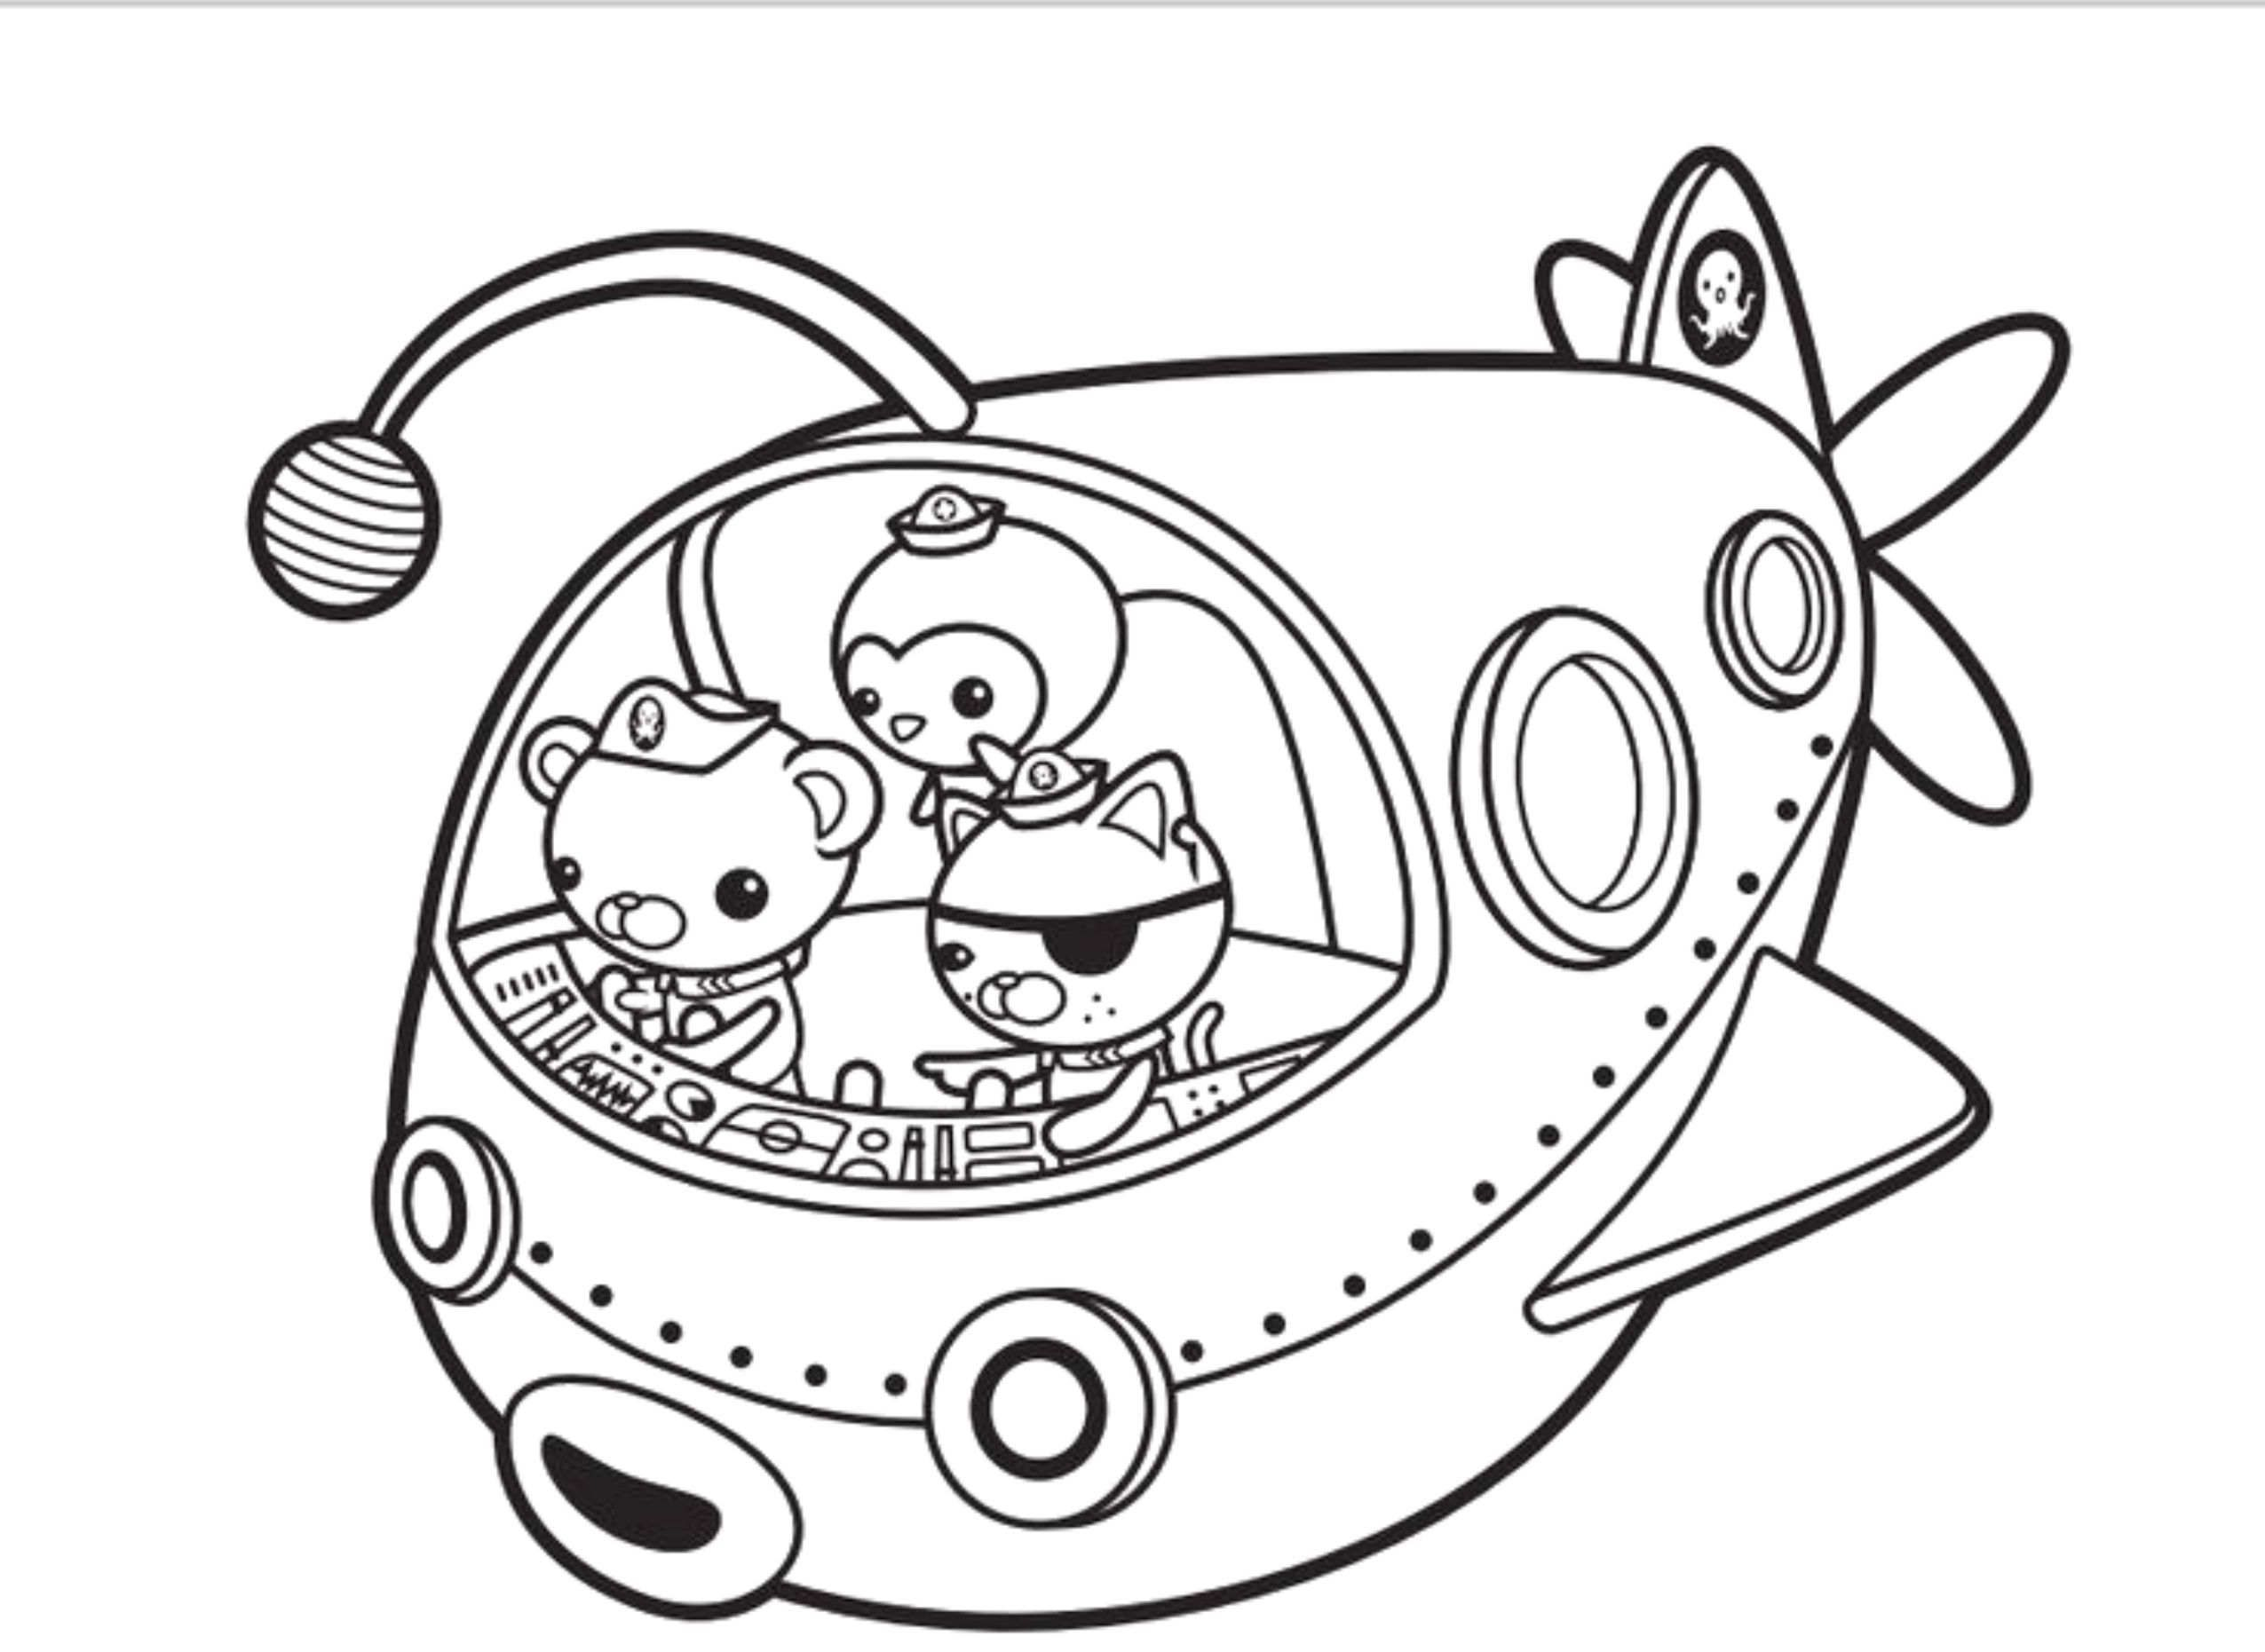 Octonauts Coloring Pages With Octonauts Coloring Pages Super Coloring Pages Online Coloring Pages Coloring Pages